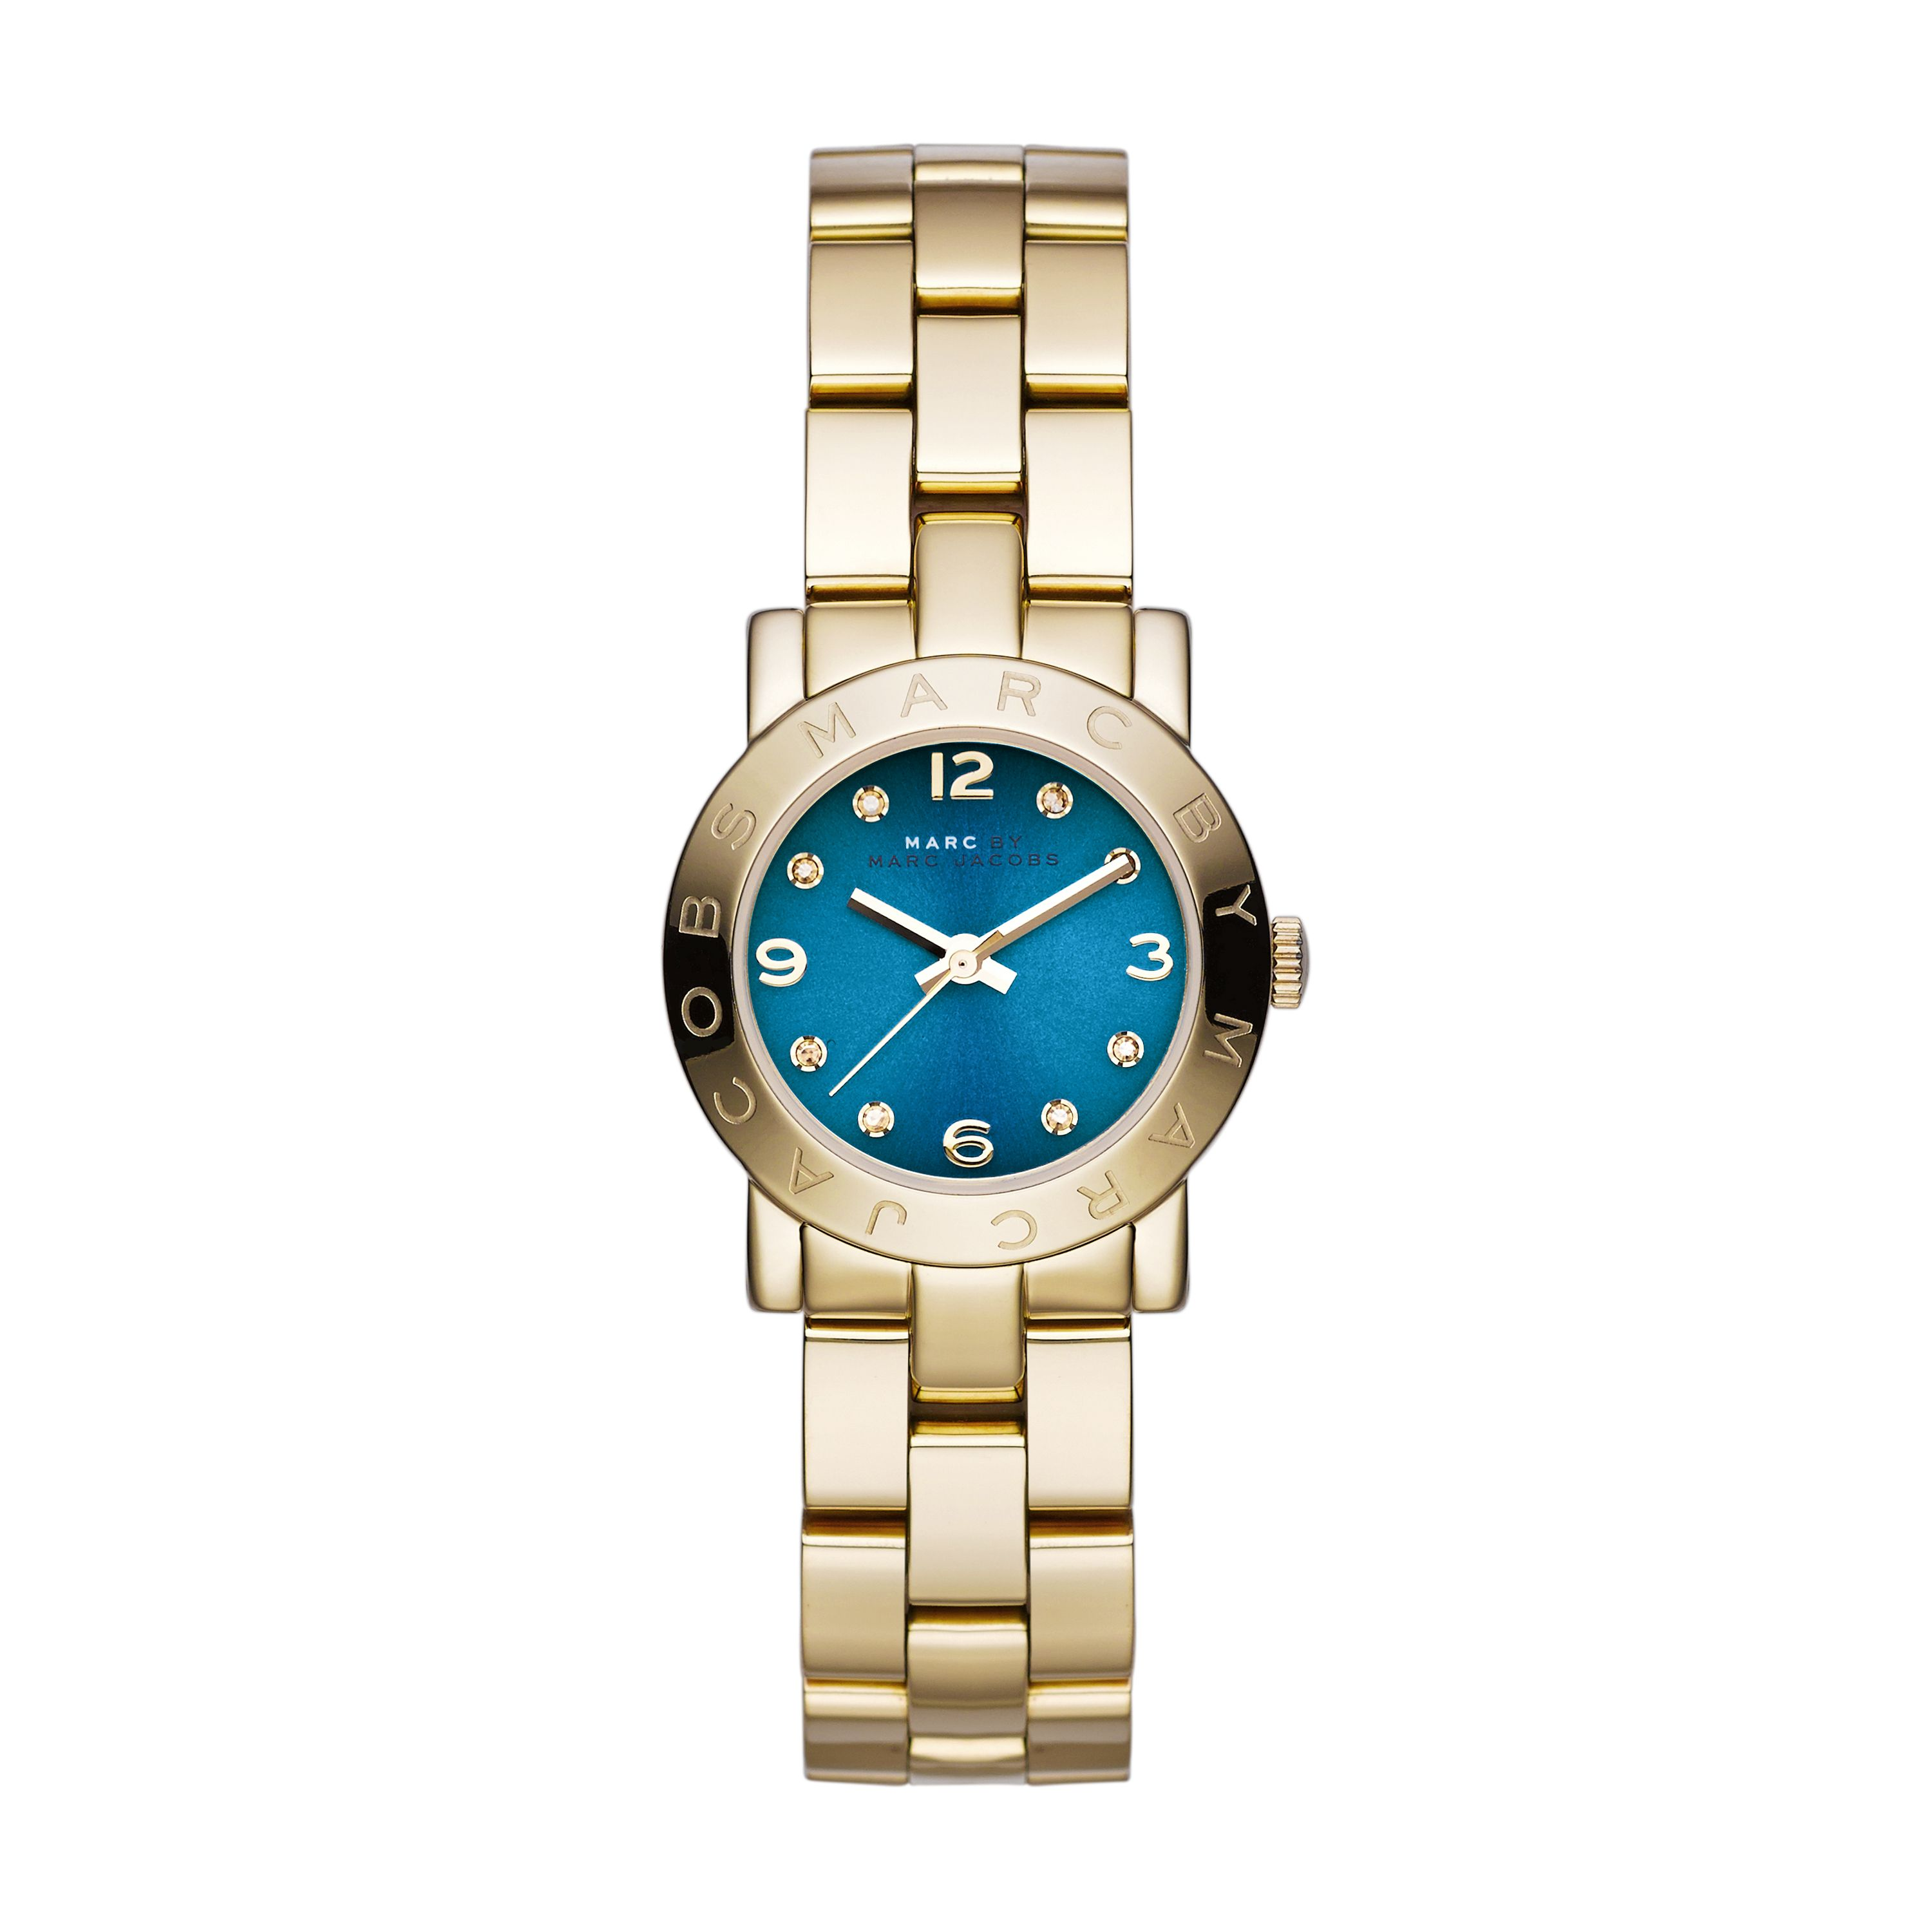 Mbm3304 amy ladies gold bracelet watch